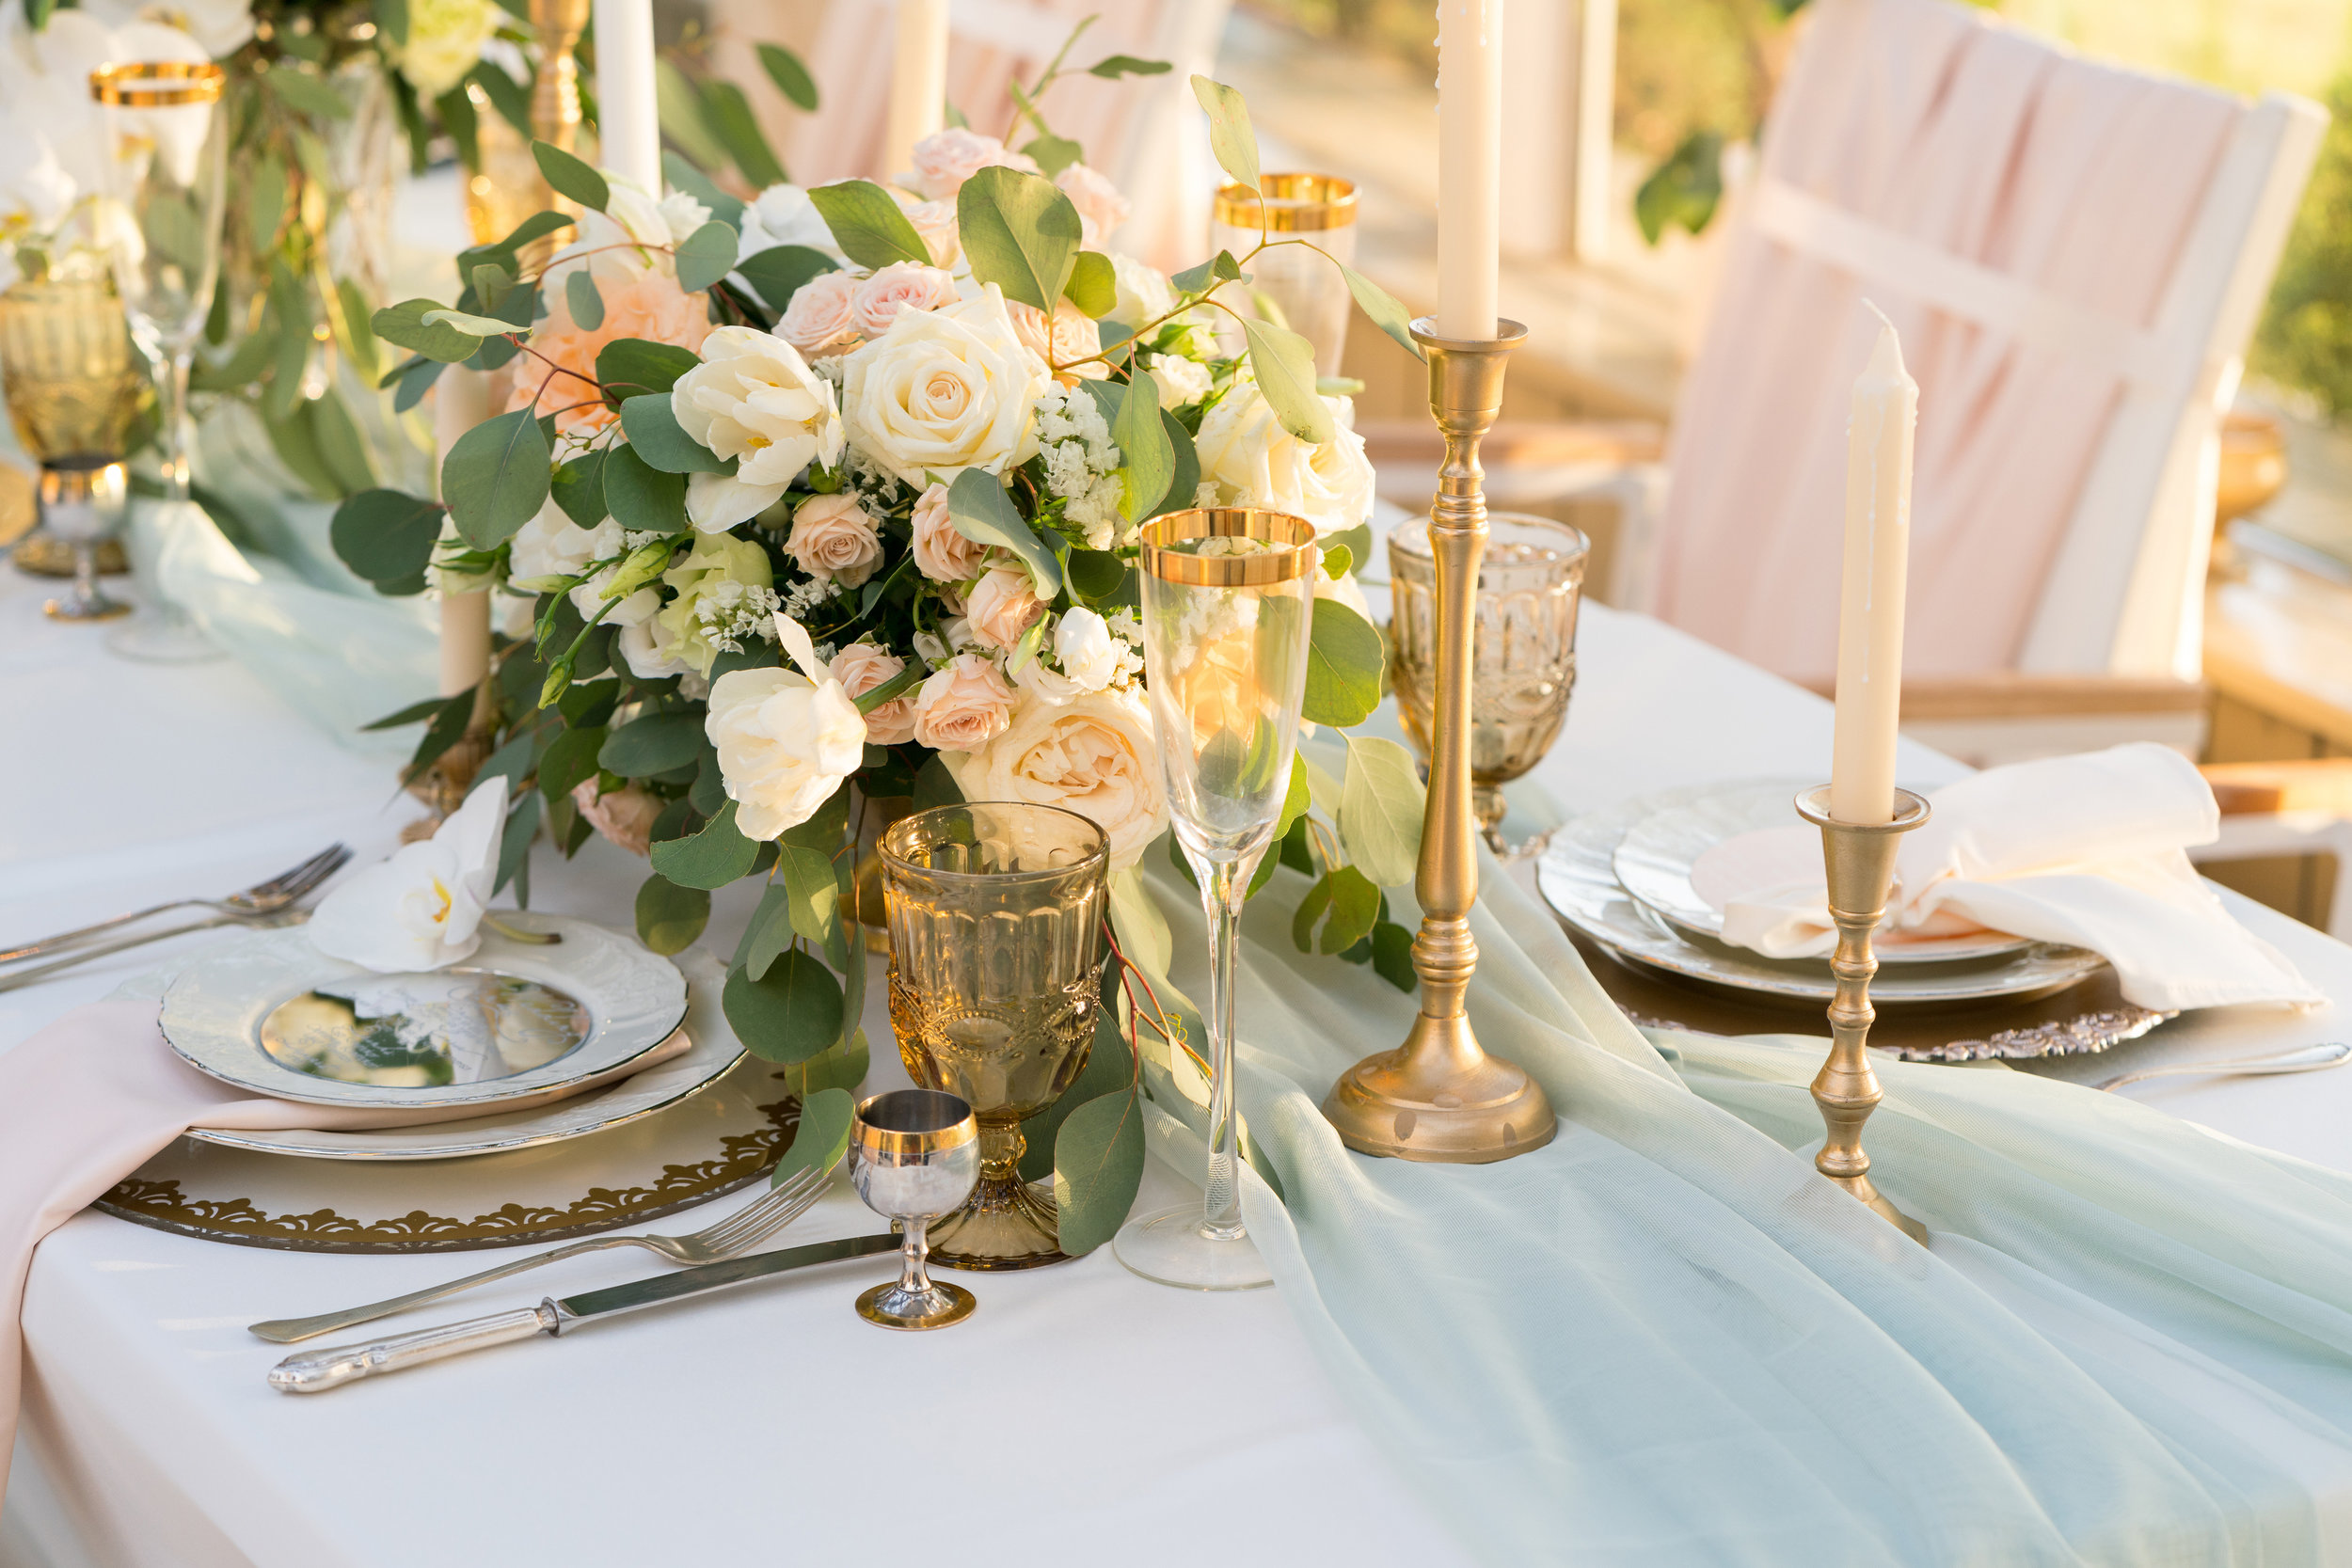 beautifully-decorated-table-with-flowers-528481416_3867x2579.jpeg